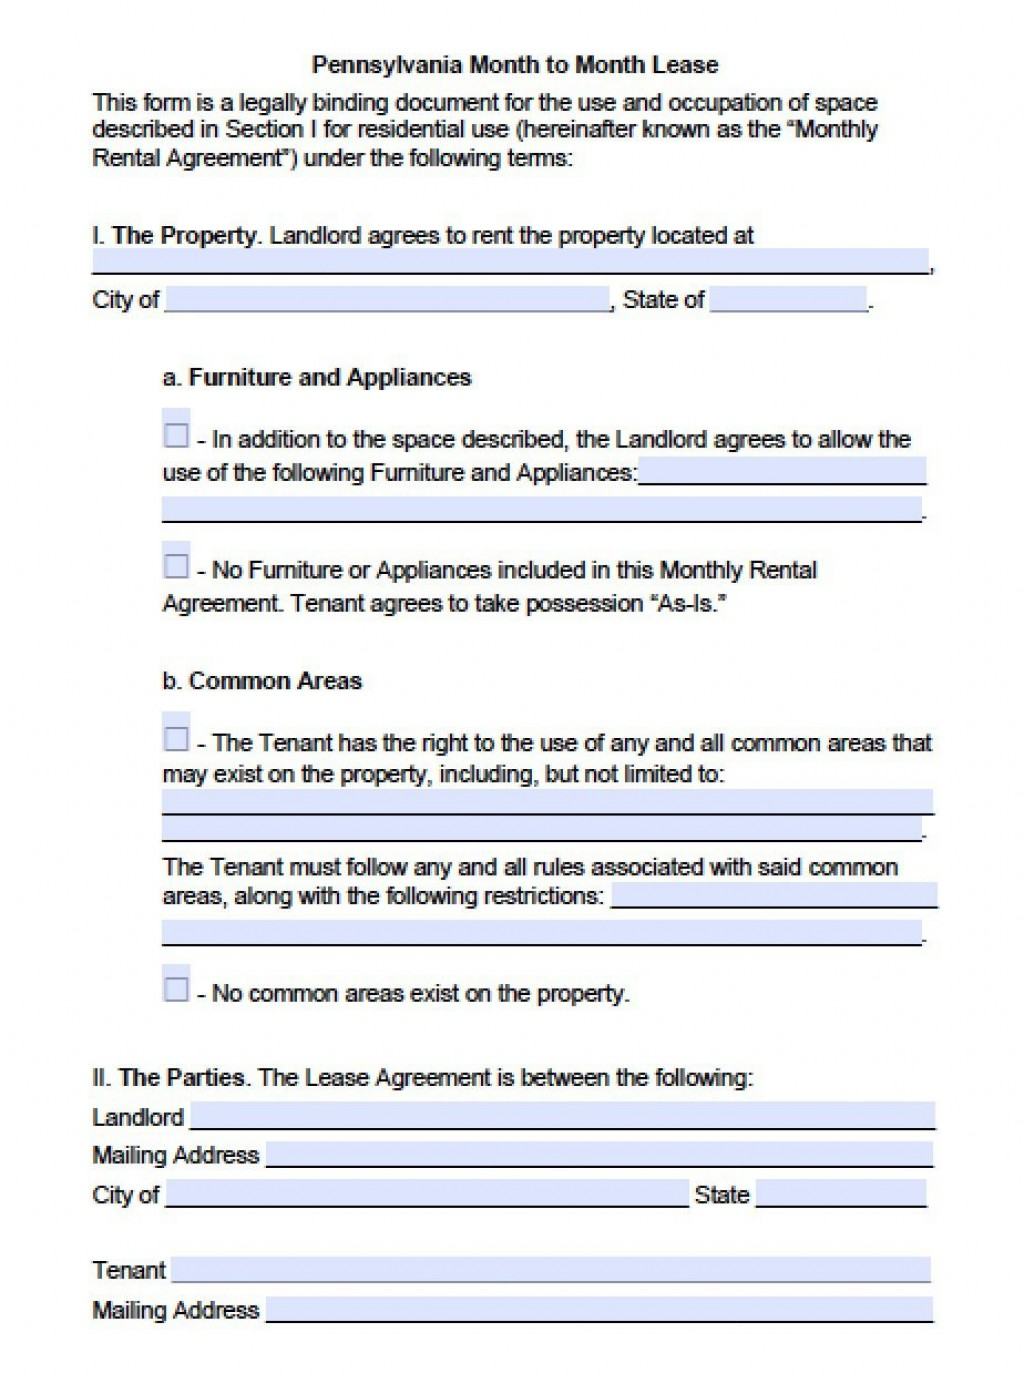 004 Frightening Rent To Own Contract Template Pennsylvania Concept Large